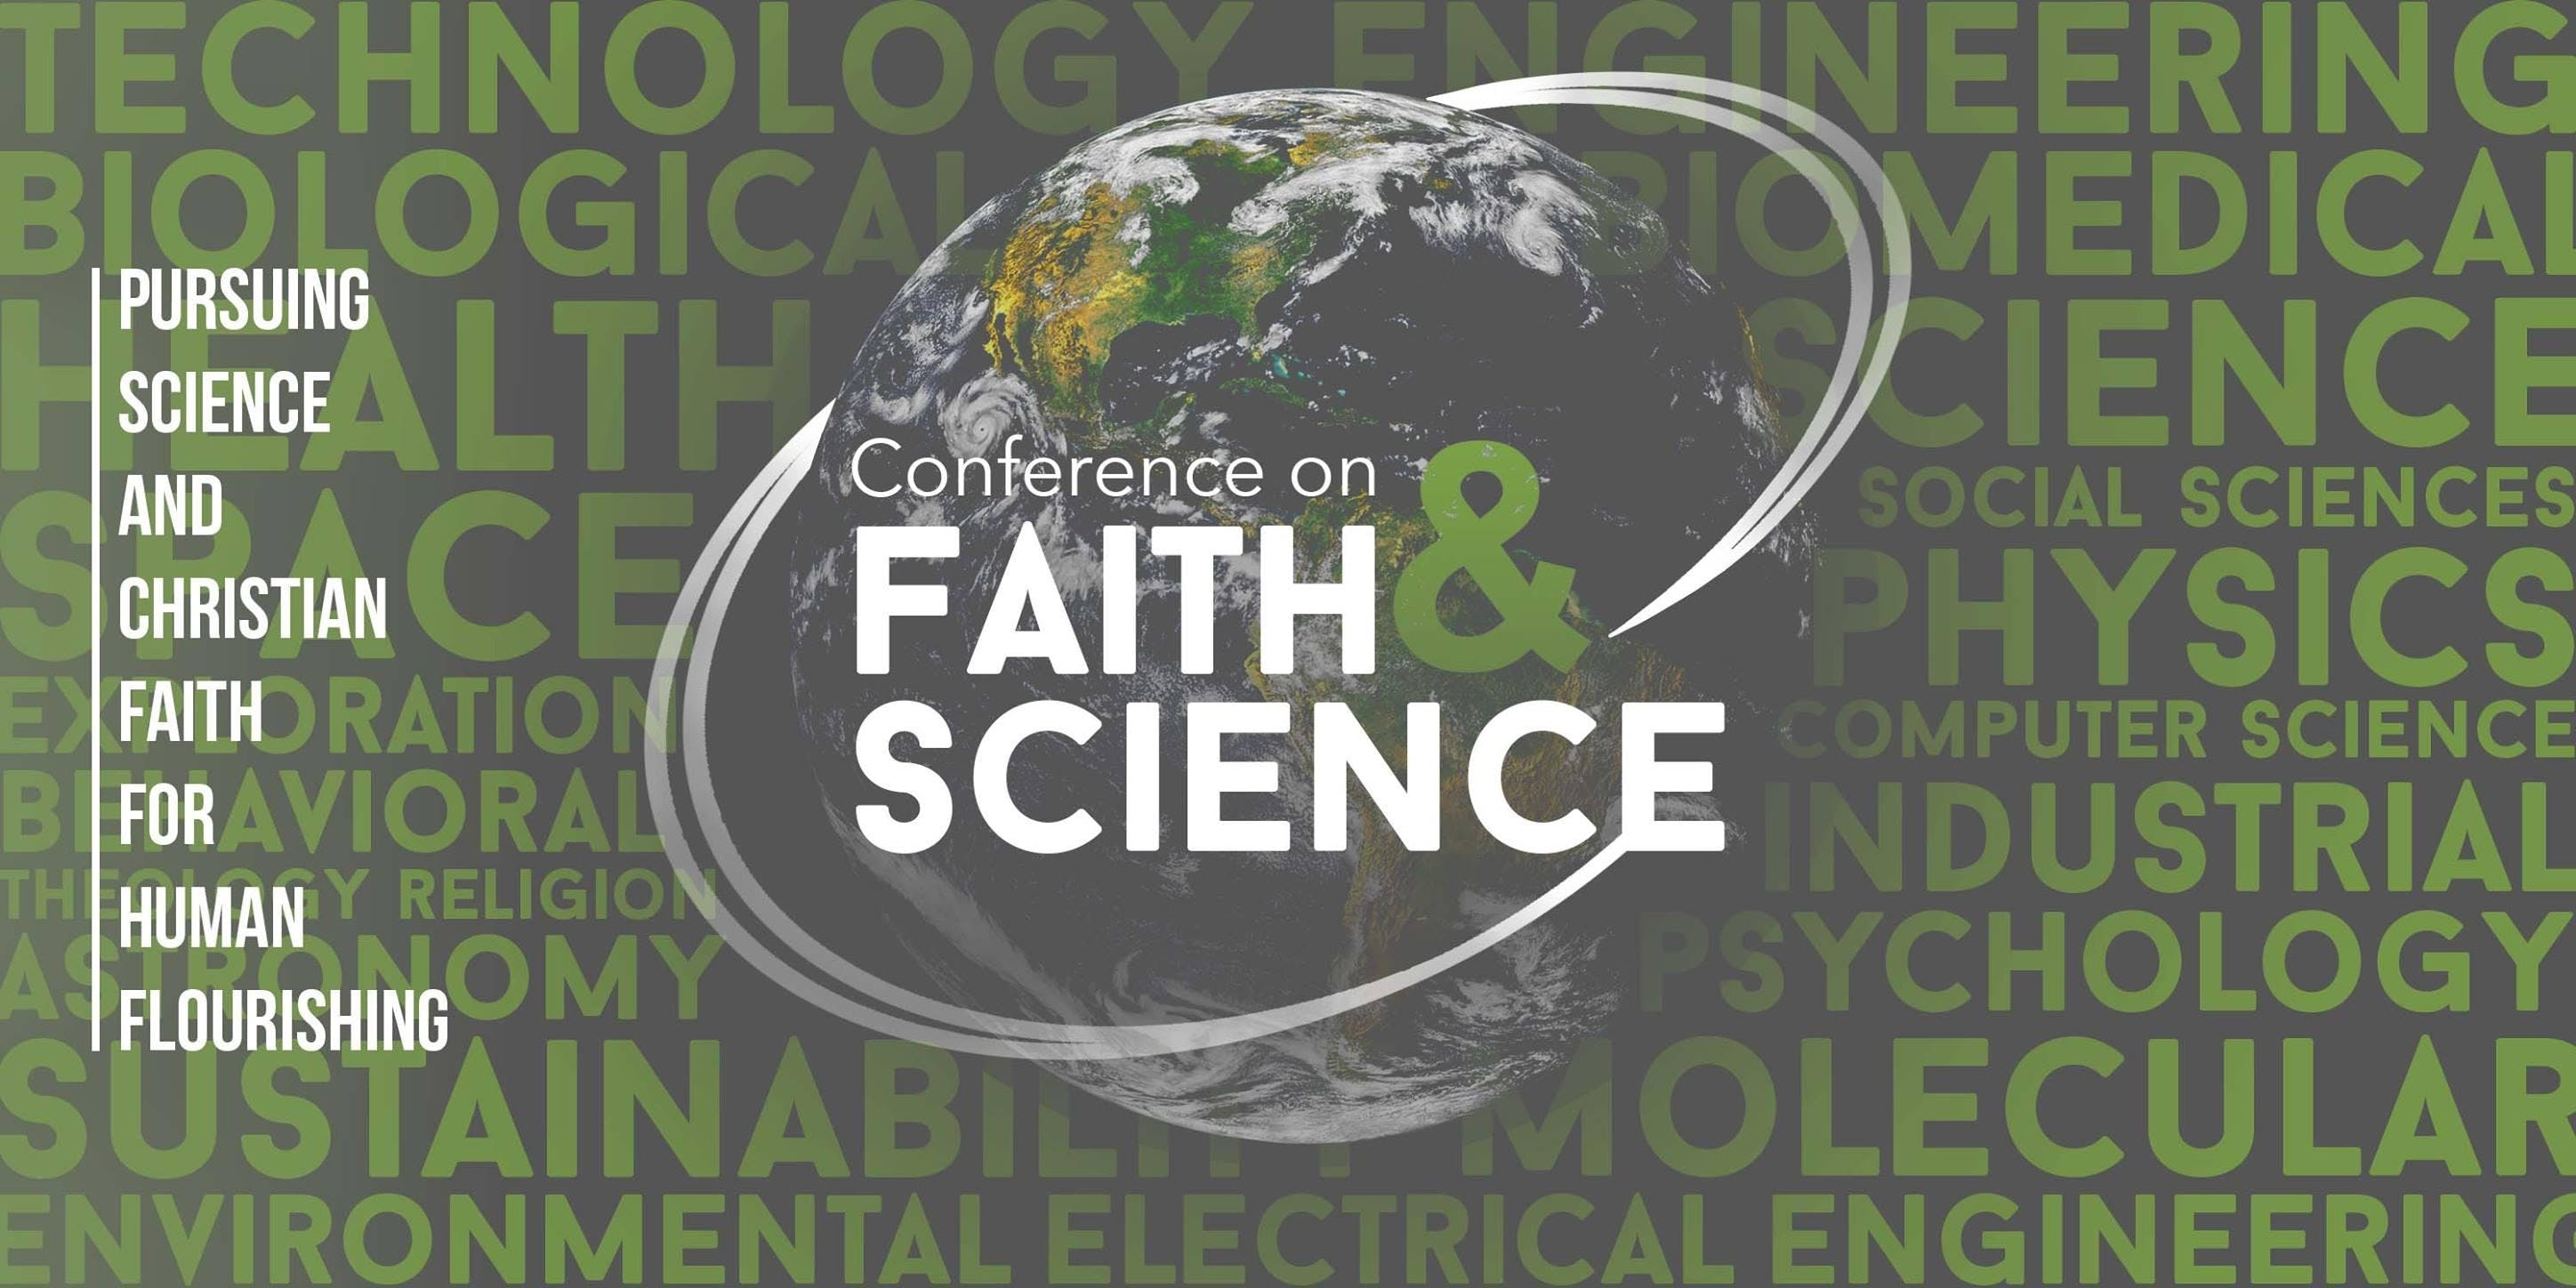 COFAS - Conference on Faith and Science